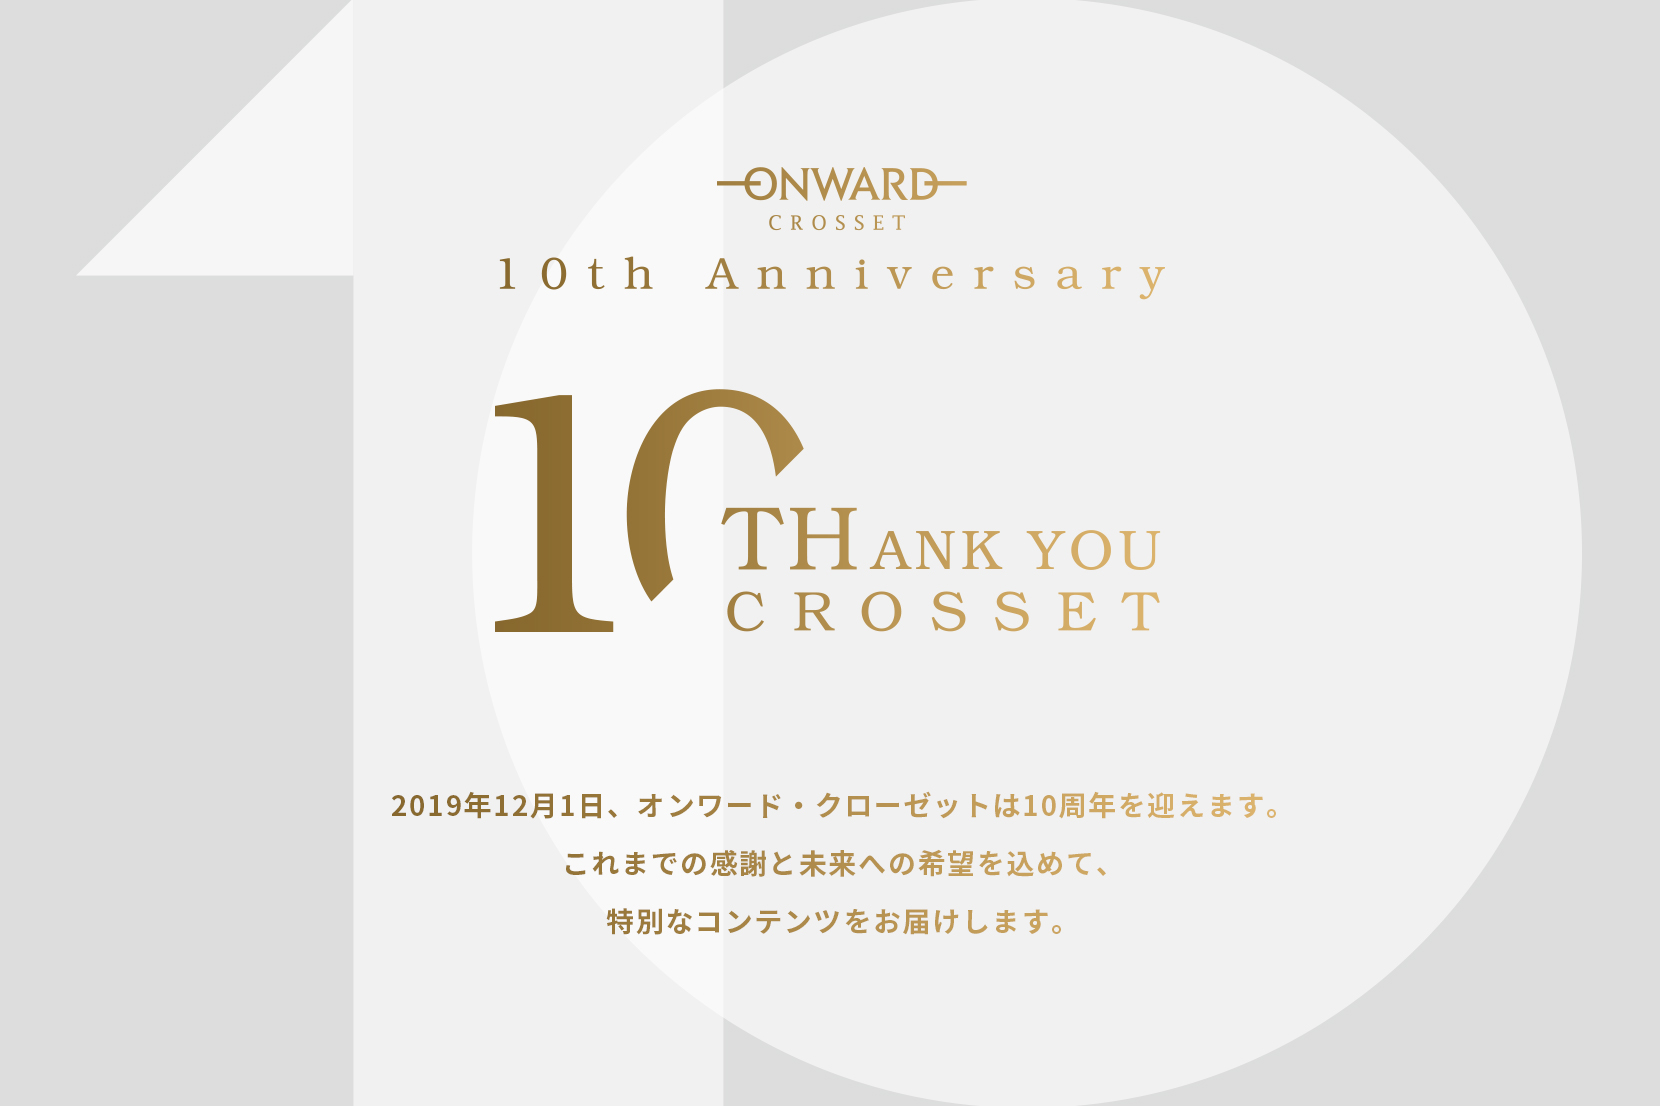 10th anniversary - ONWARD CROSSET